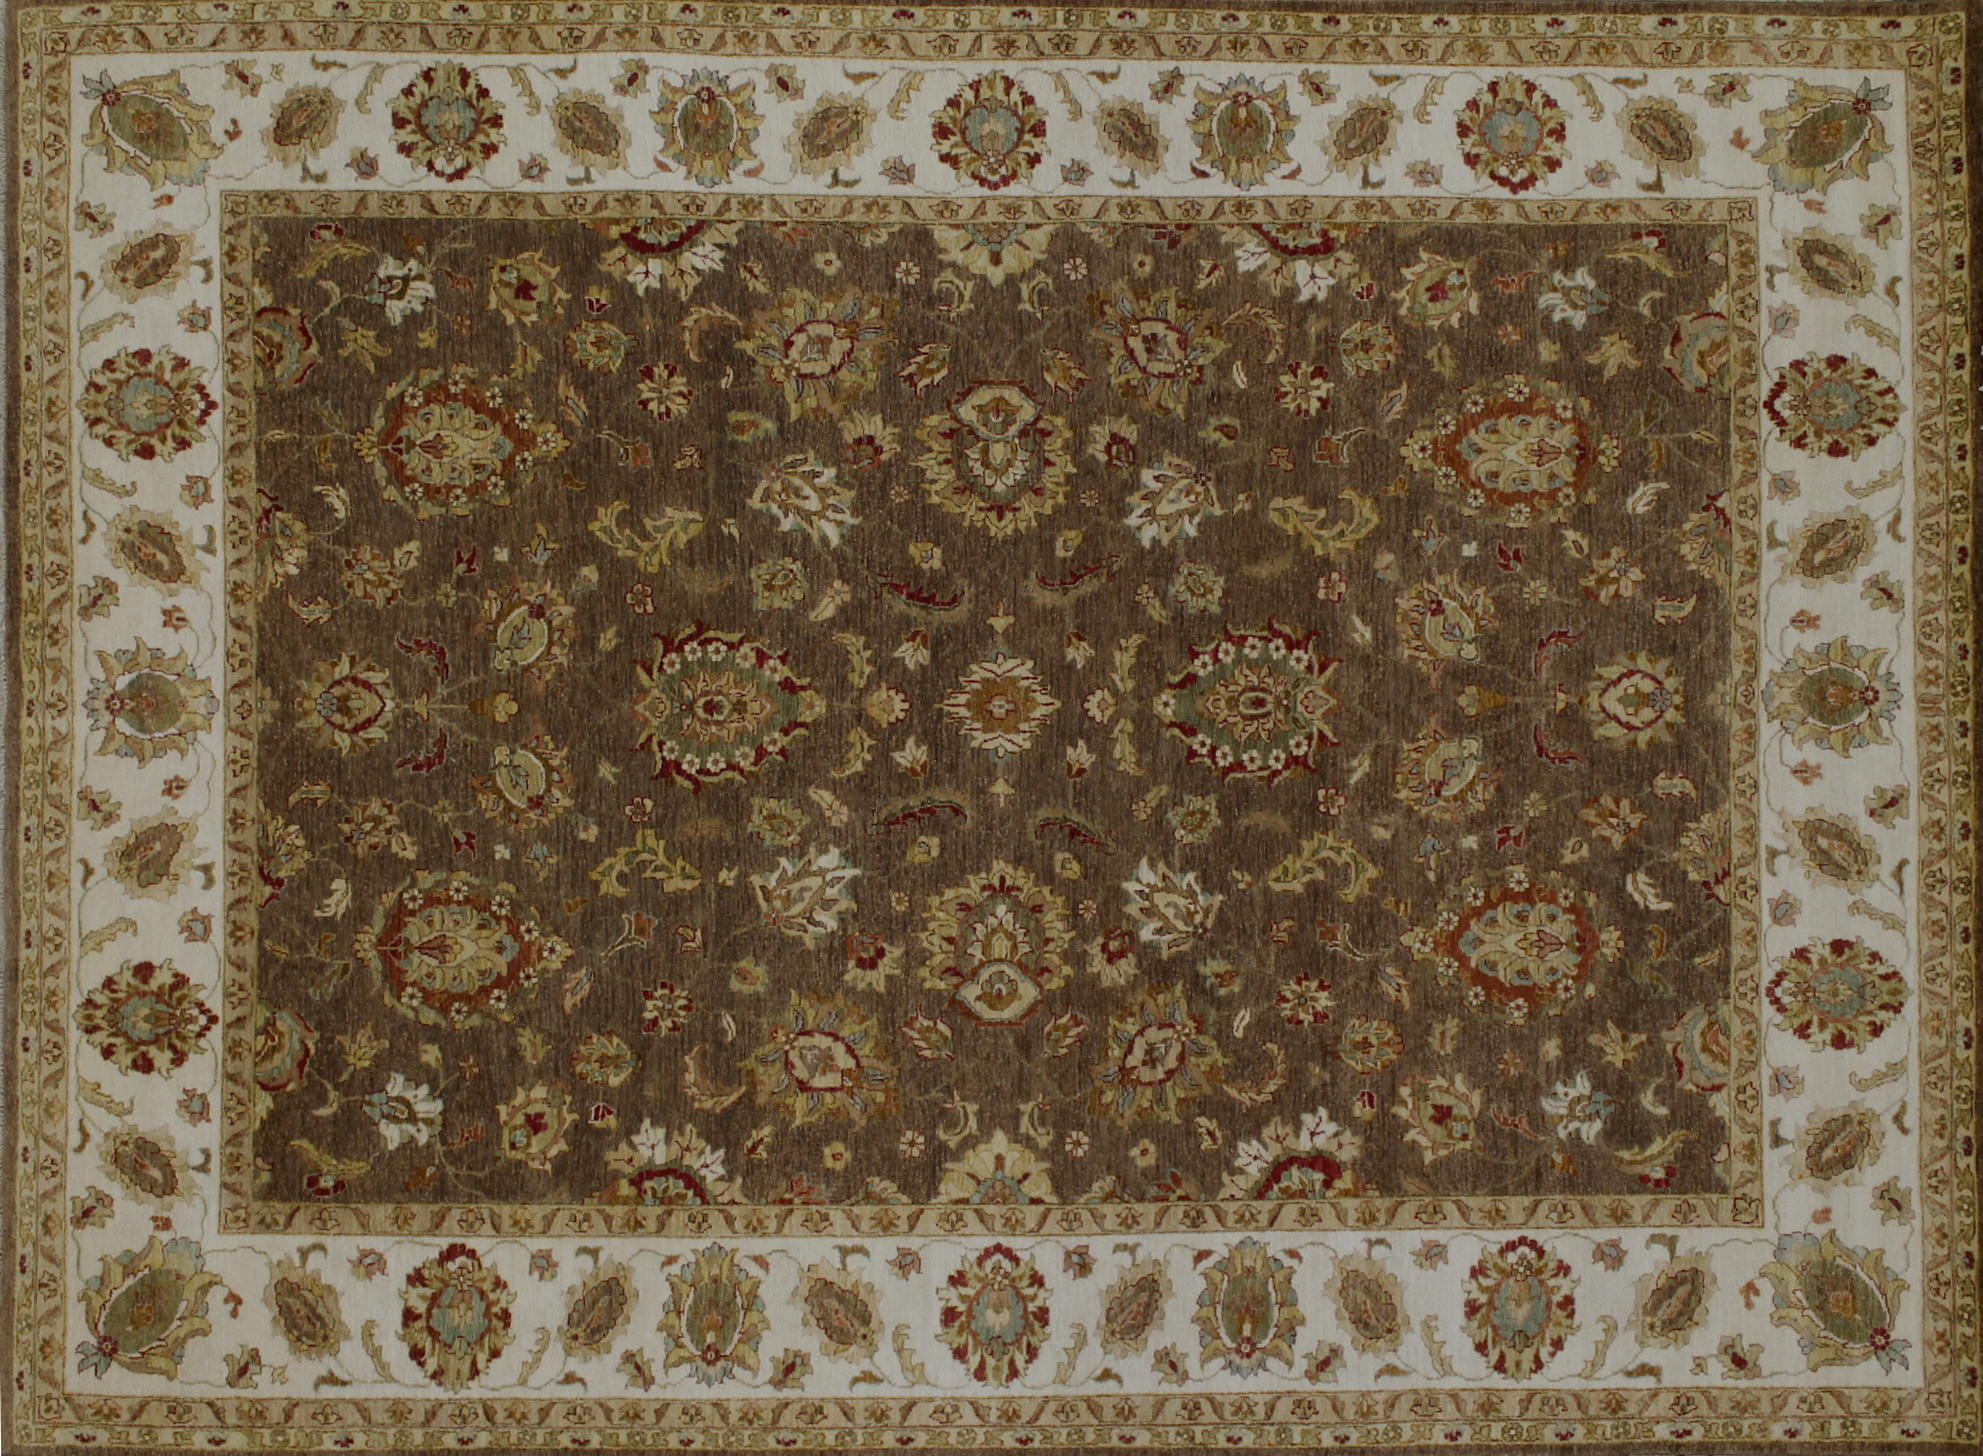 9x12 Traditional Hand Knotted Wool Area Rug - MR022396